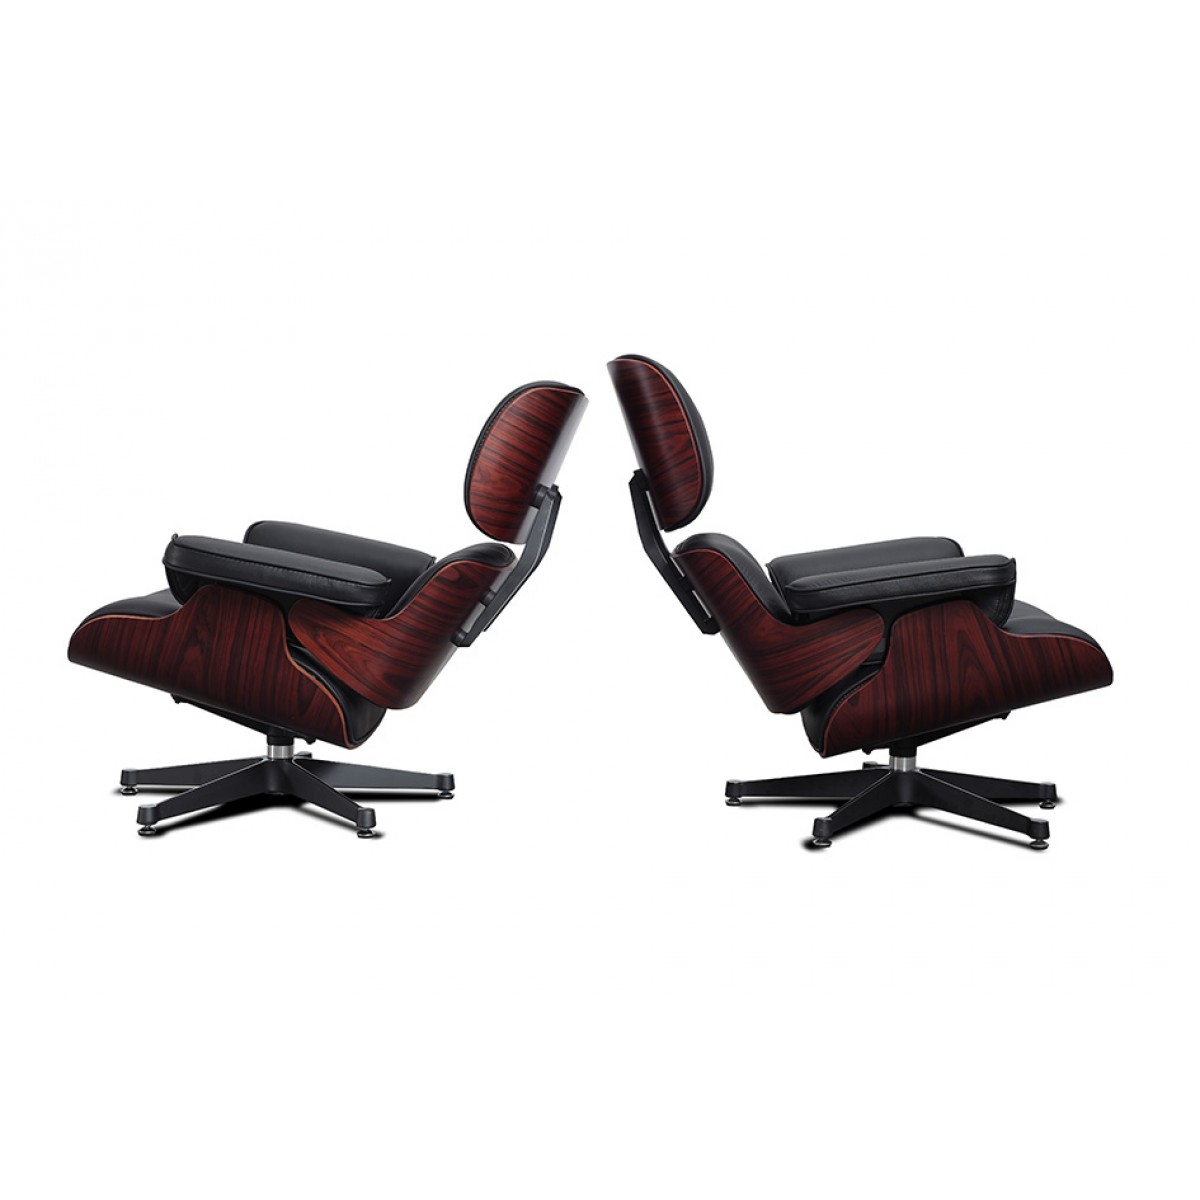 Eames Style Lounge Chair and Ottoman Black Leather  : standard taller version eames lounge chair 1200x1200 from www.modborn.com size 1200 x 1200 jpeg 79kB